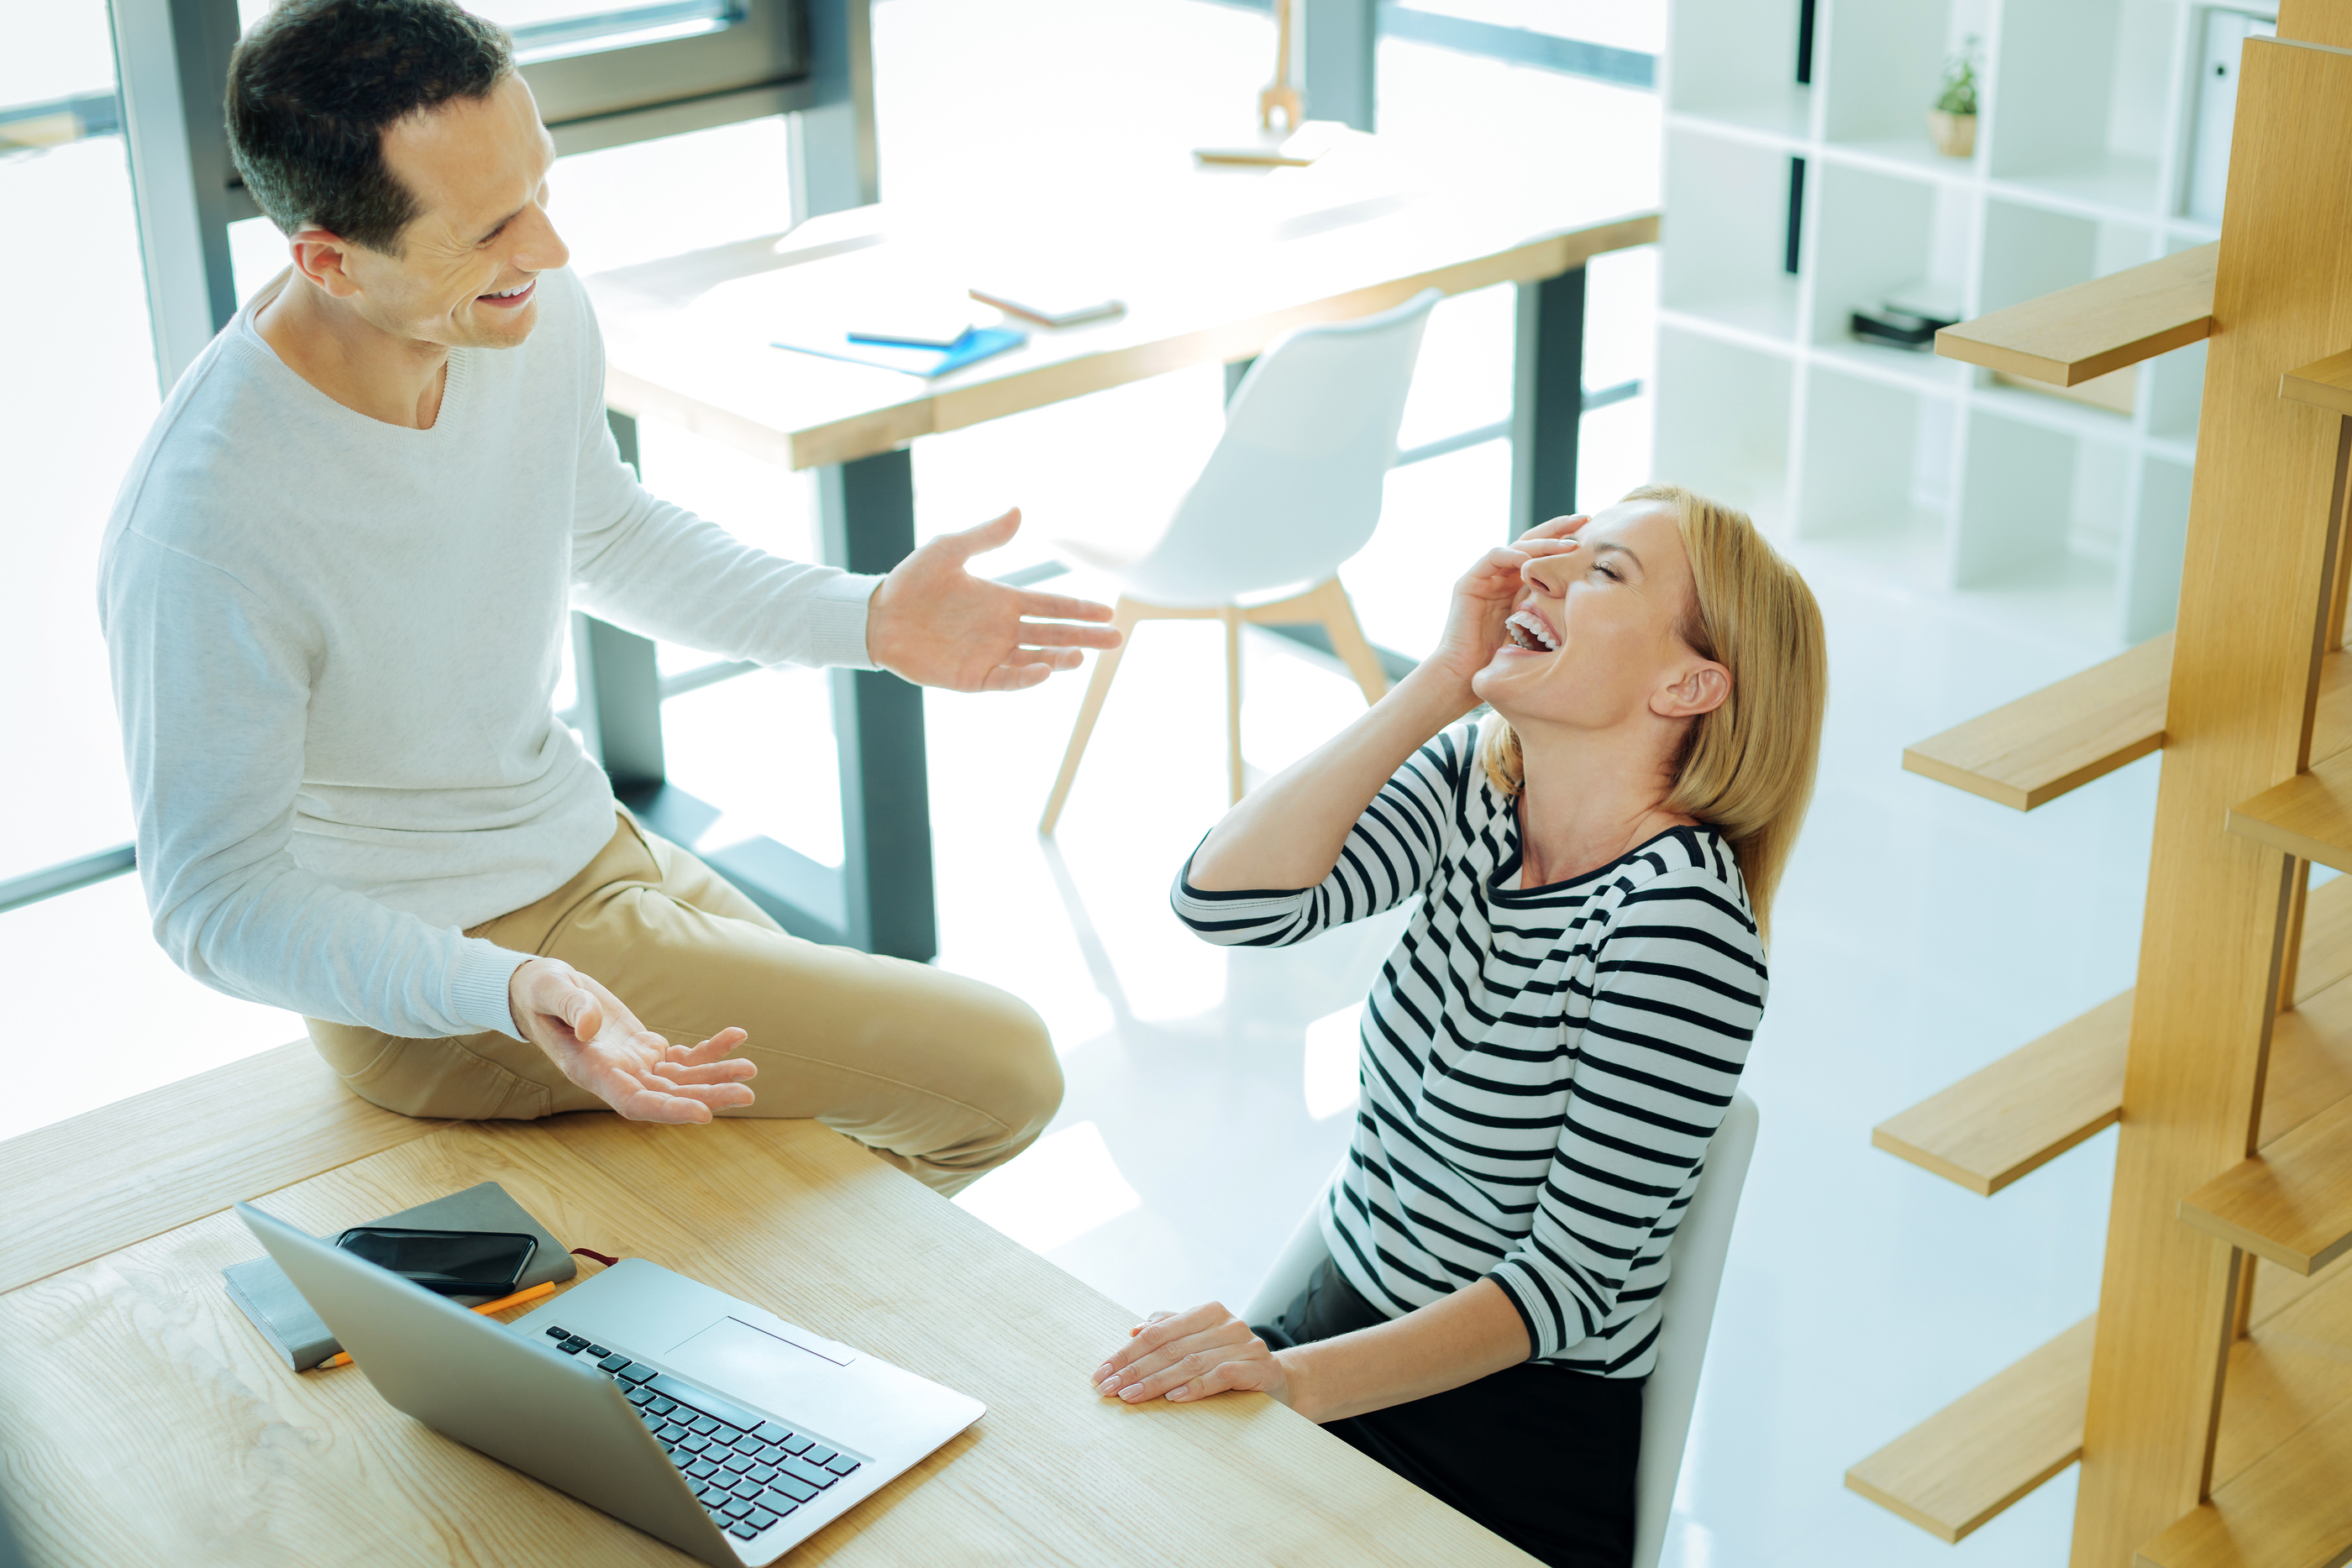 People Think You're Having an Affair at Work? Ask Madeleine